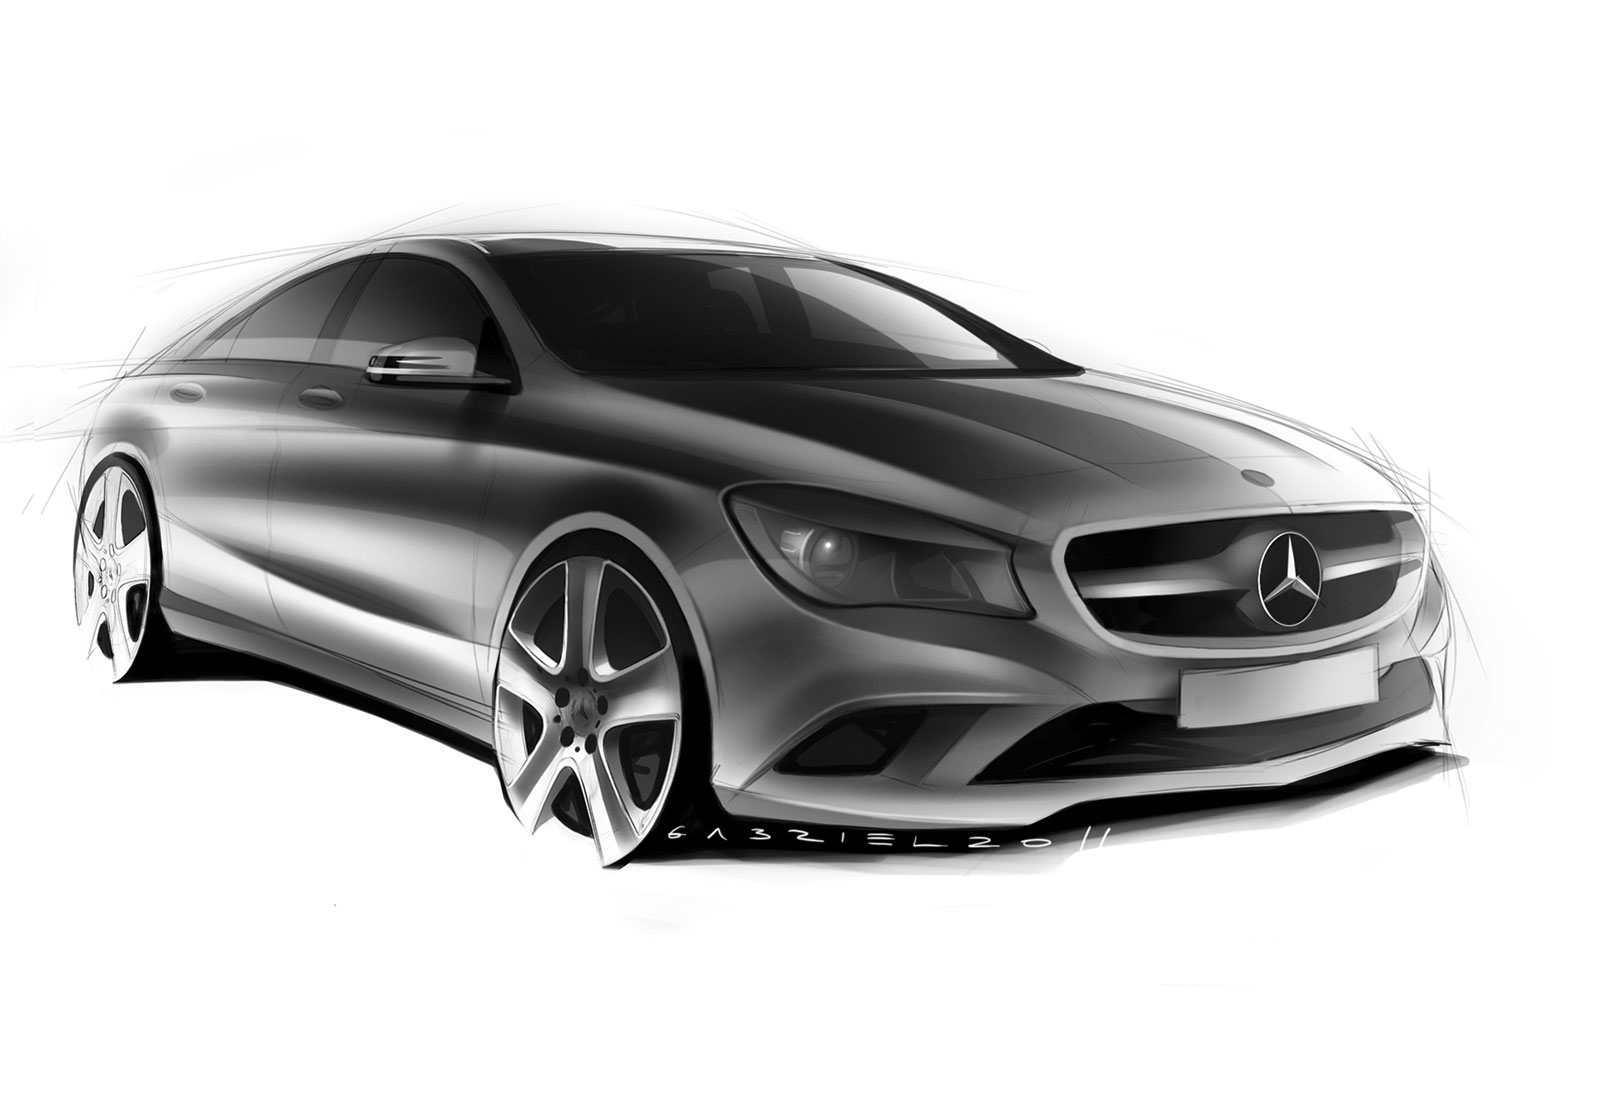 Mercedes Benz Cla Class Design Sketch on Volvo S60 Sketch